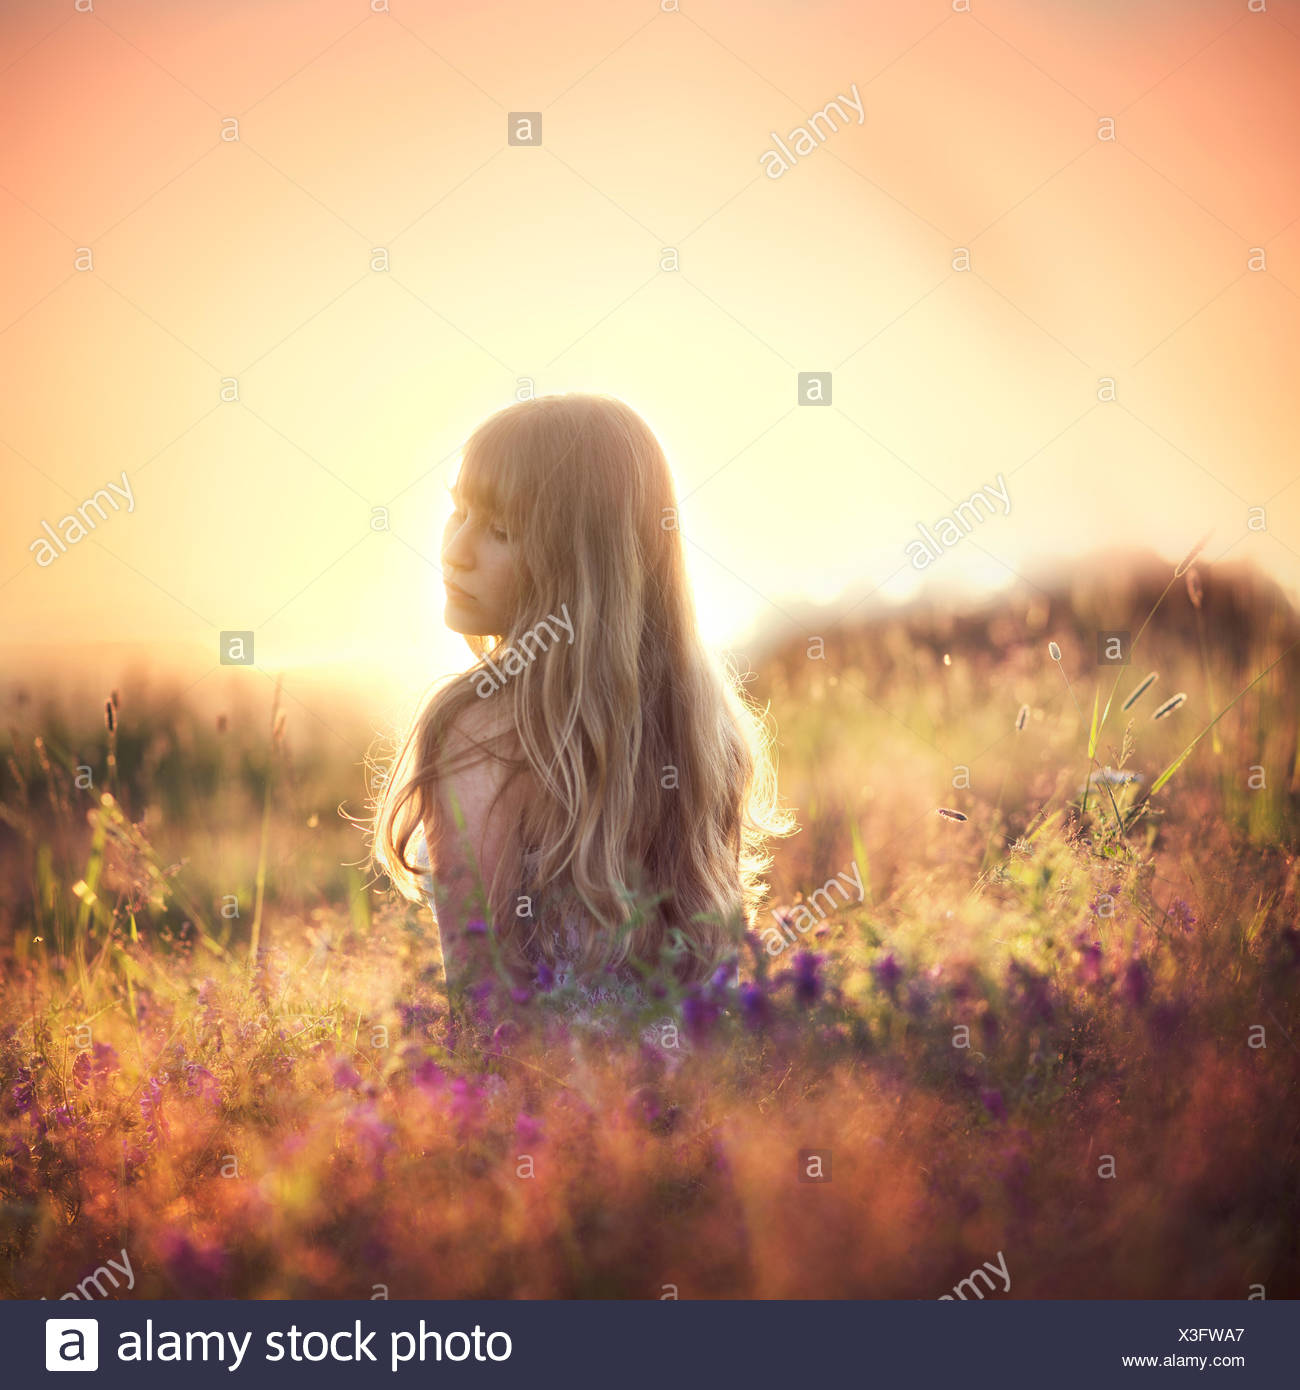 Woman looking over her shoulder in field - Stock Image